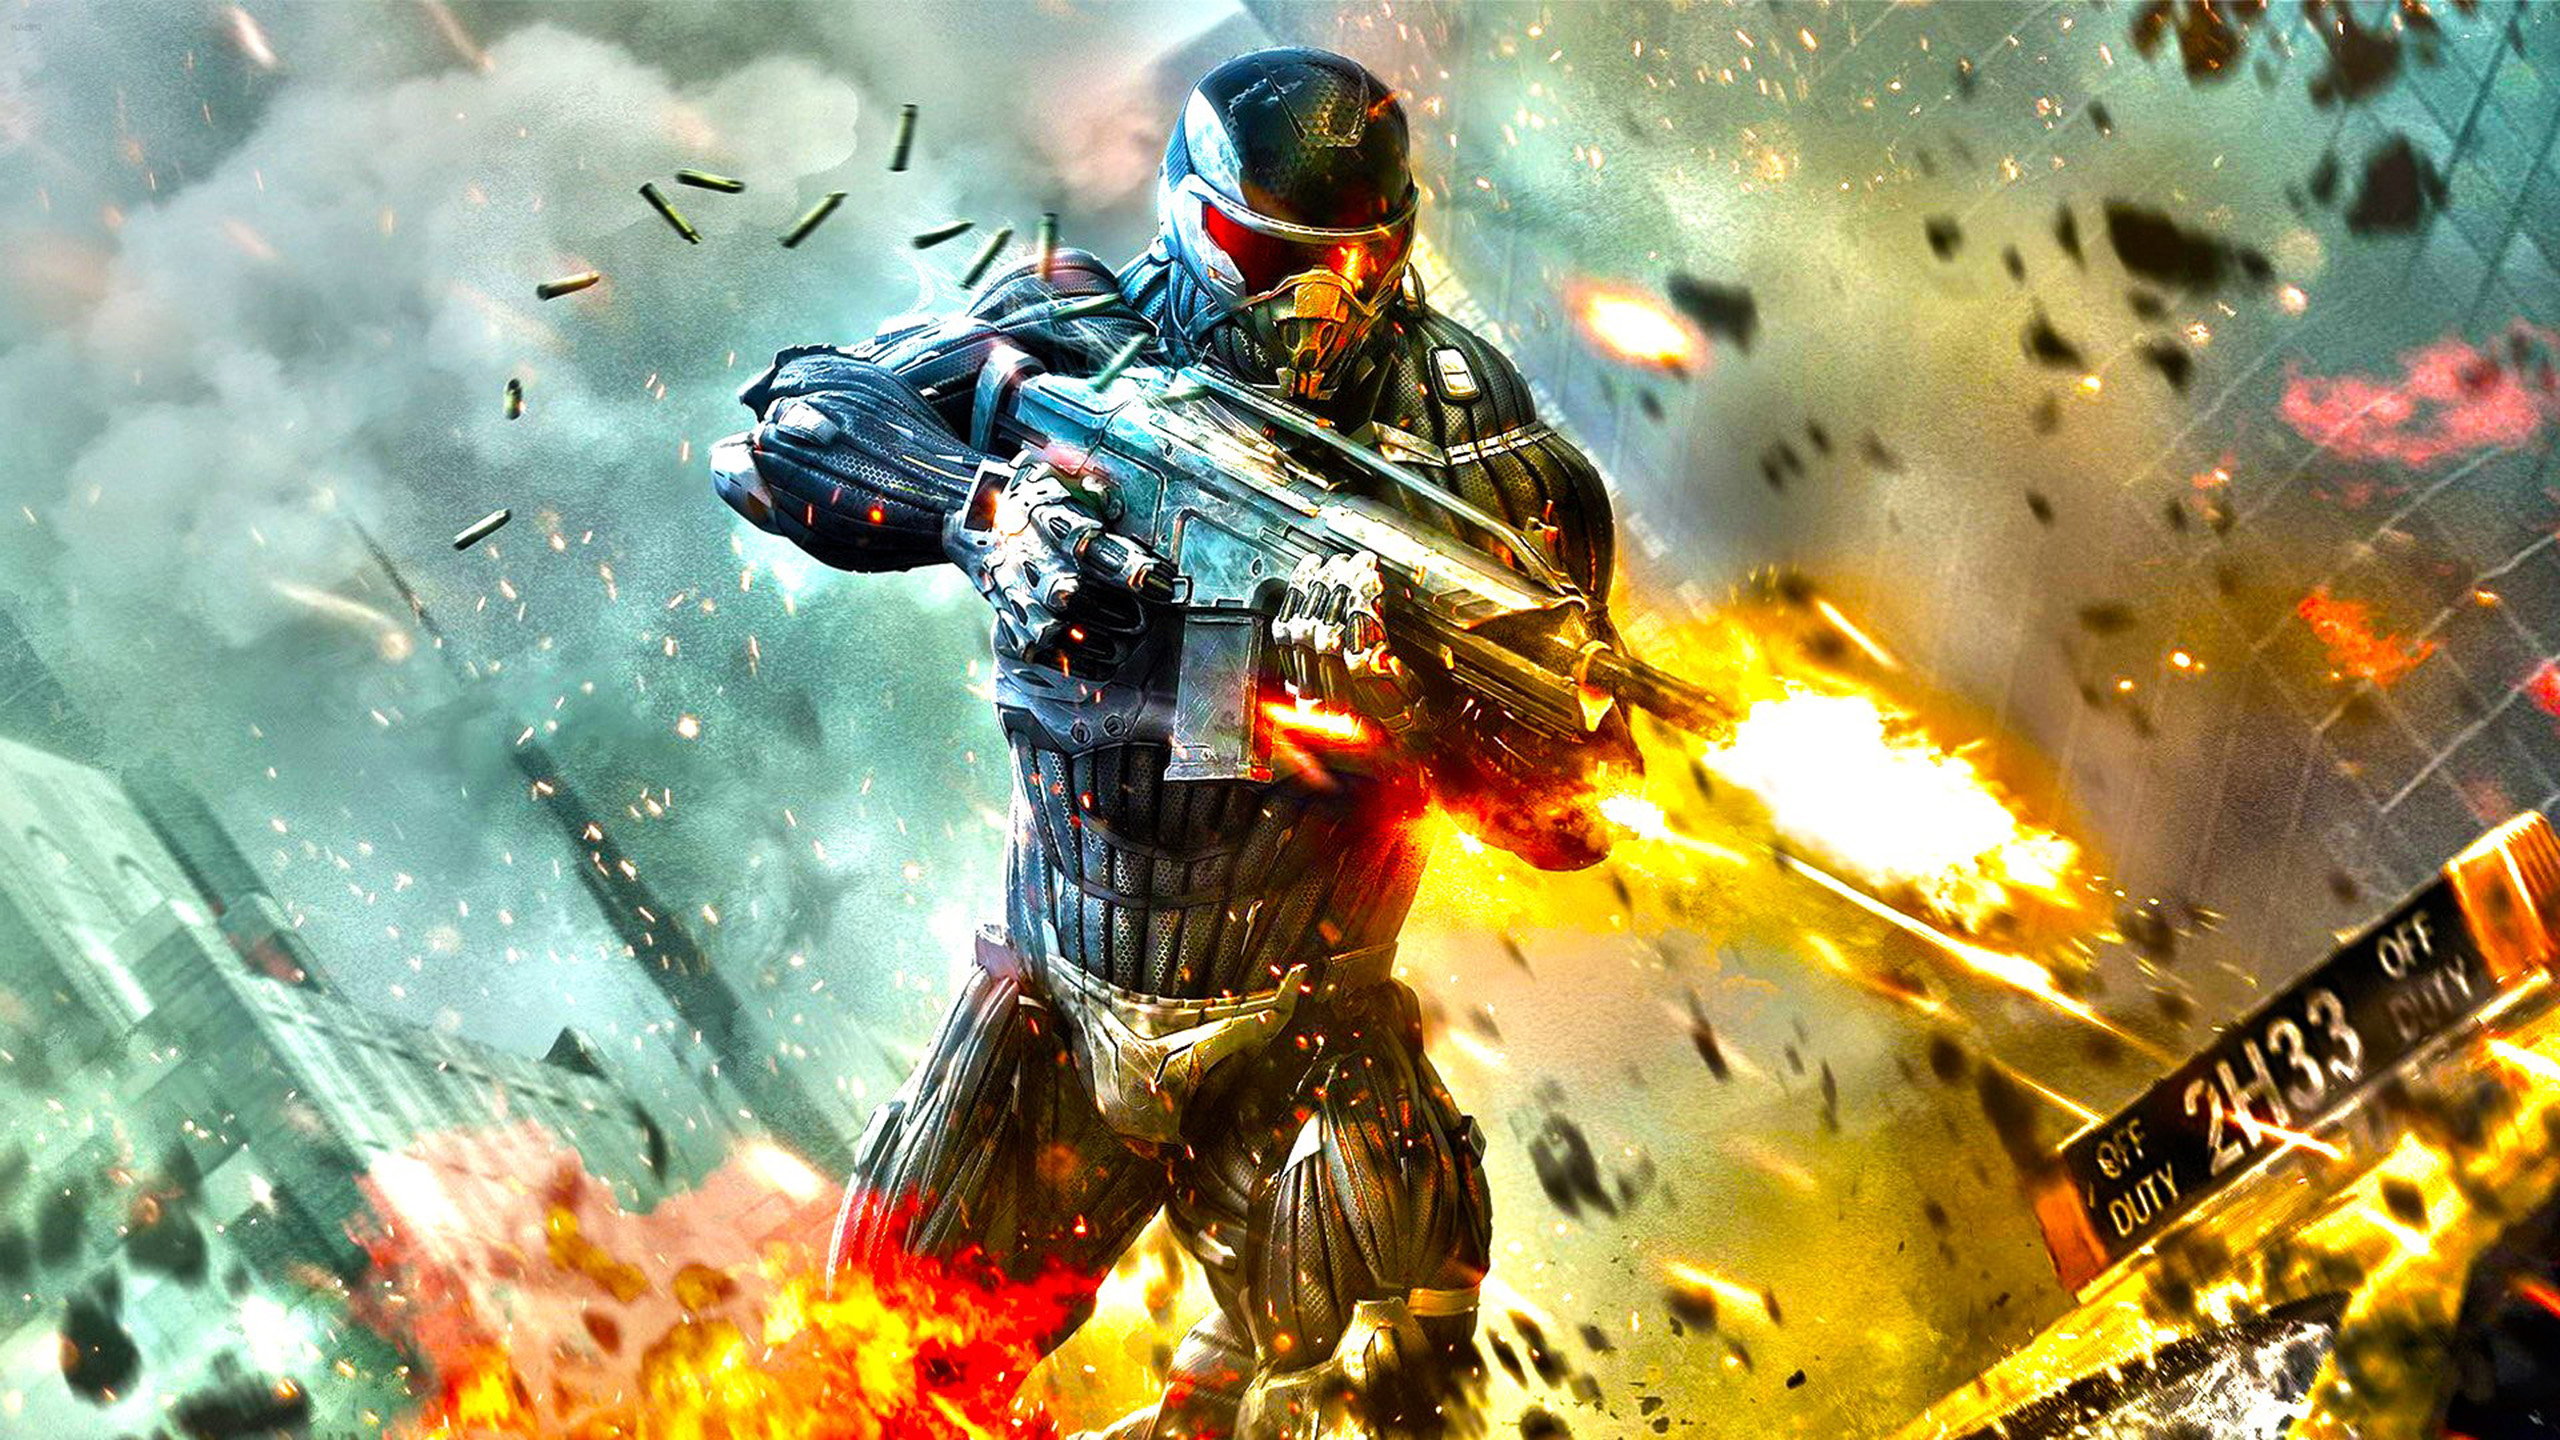 Action Game Hd Wallpaper Collection: Crysis 2 HD Wallpaper